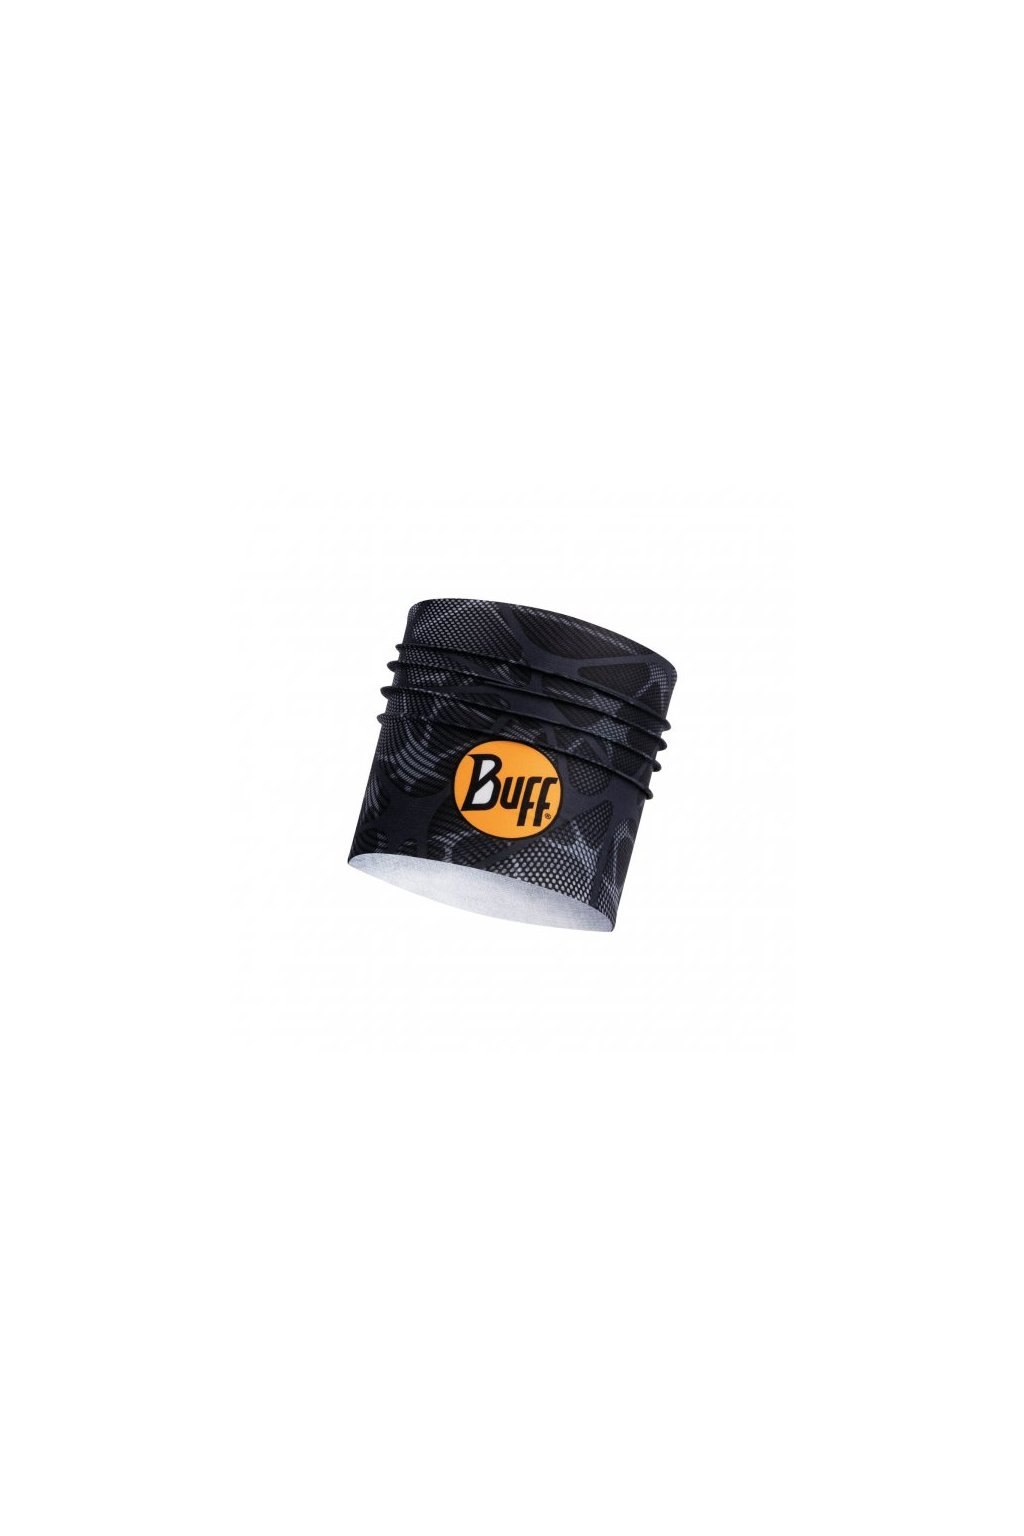 buff pro team ape x black coolnet uv headband 1217499991000